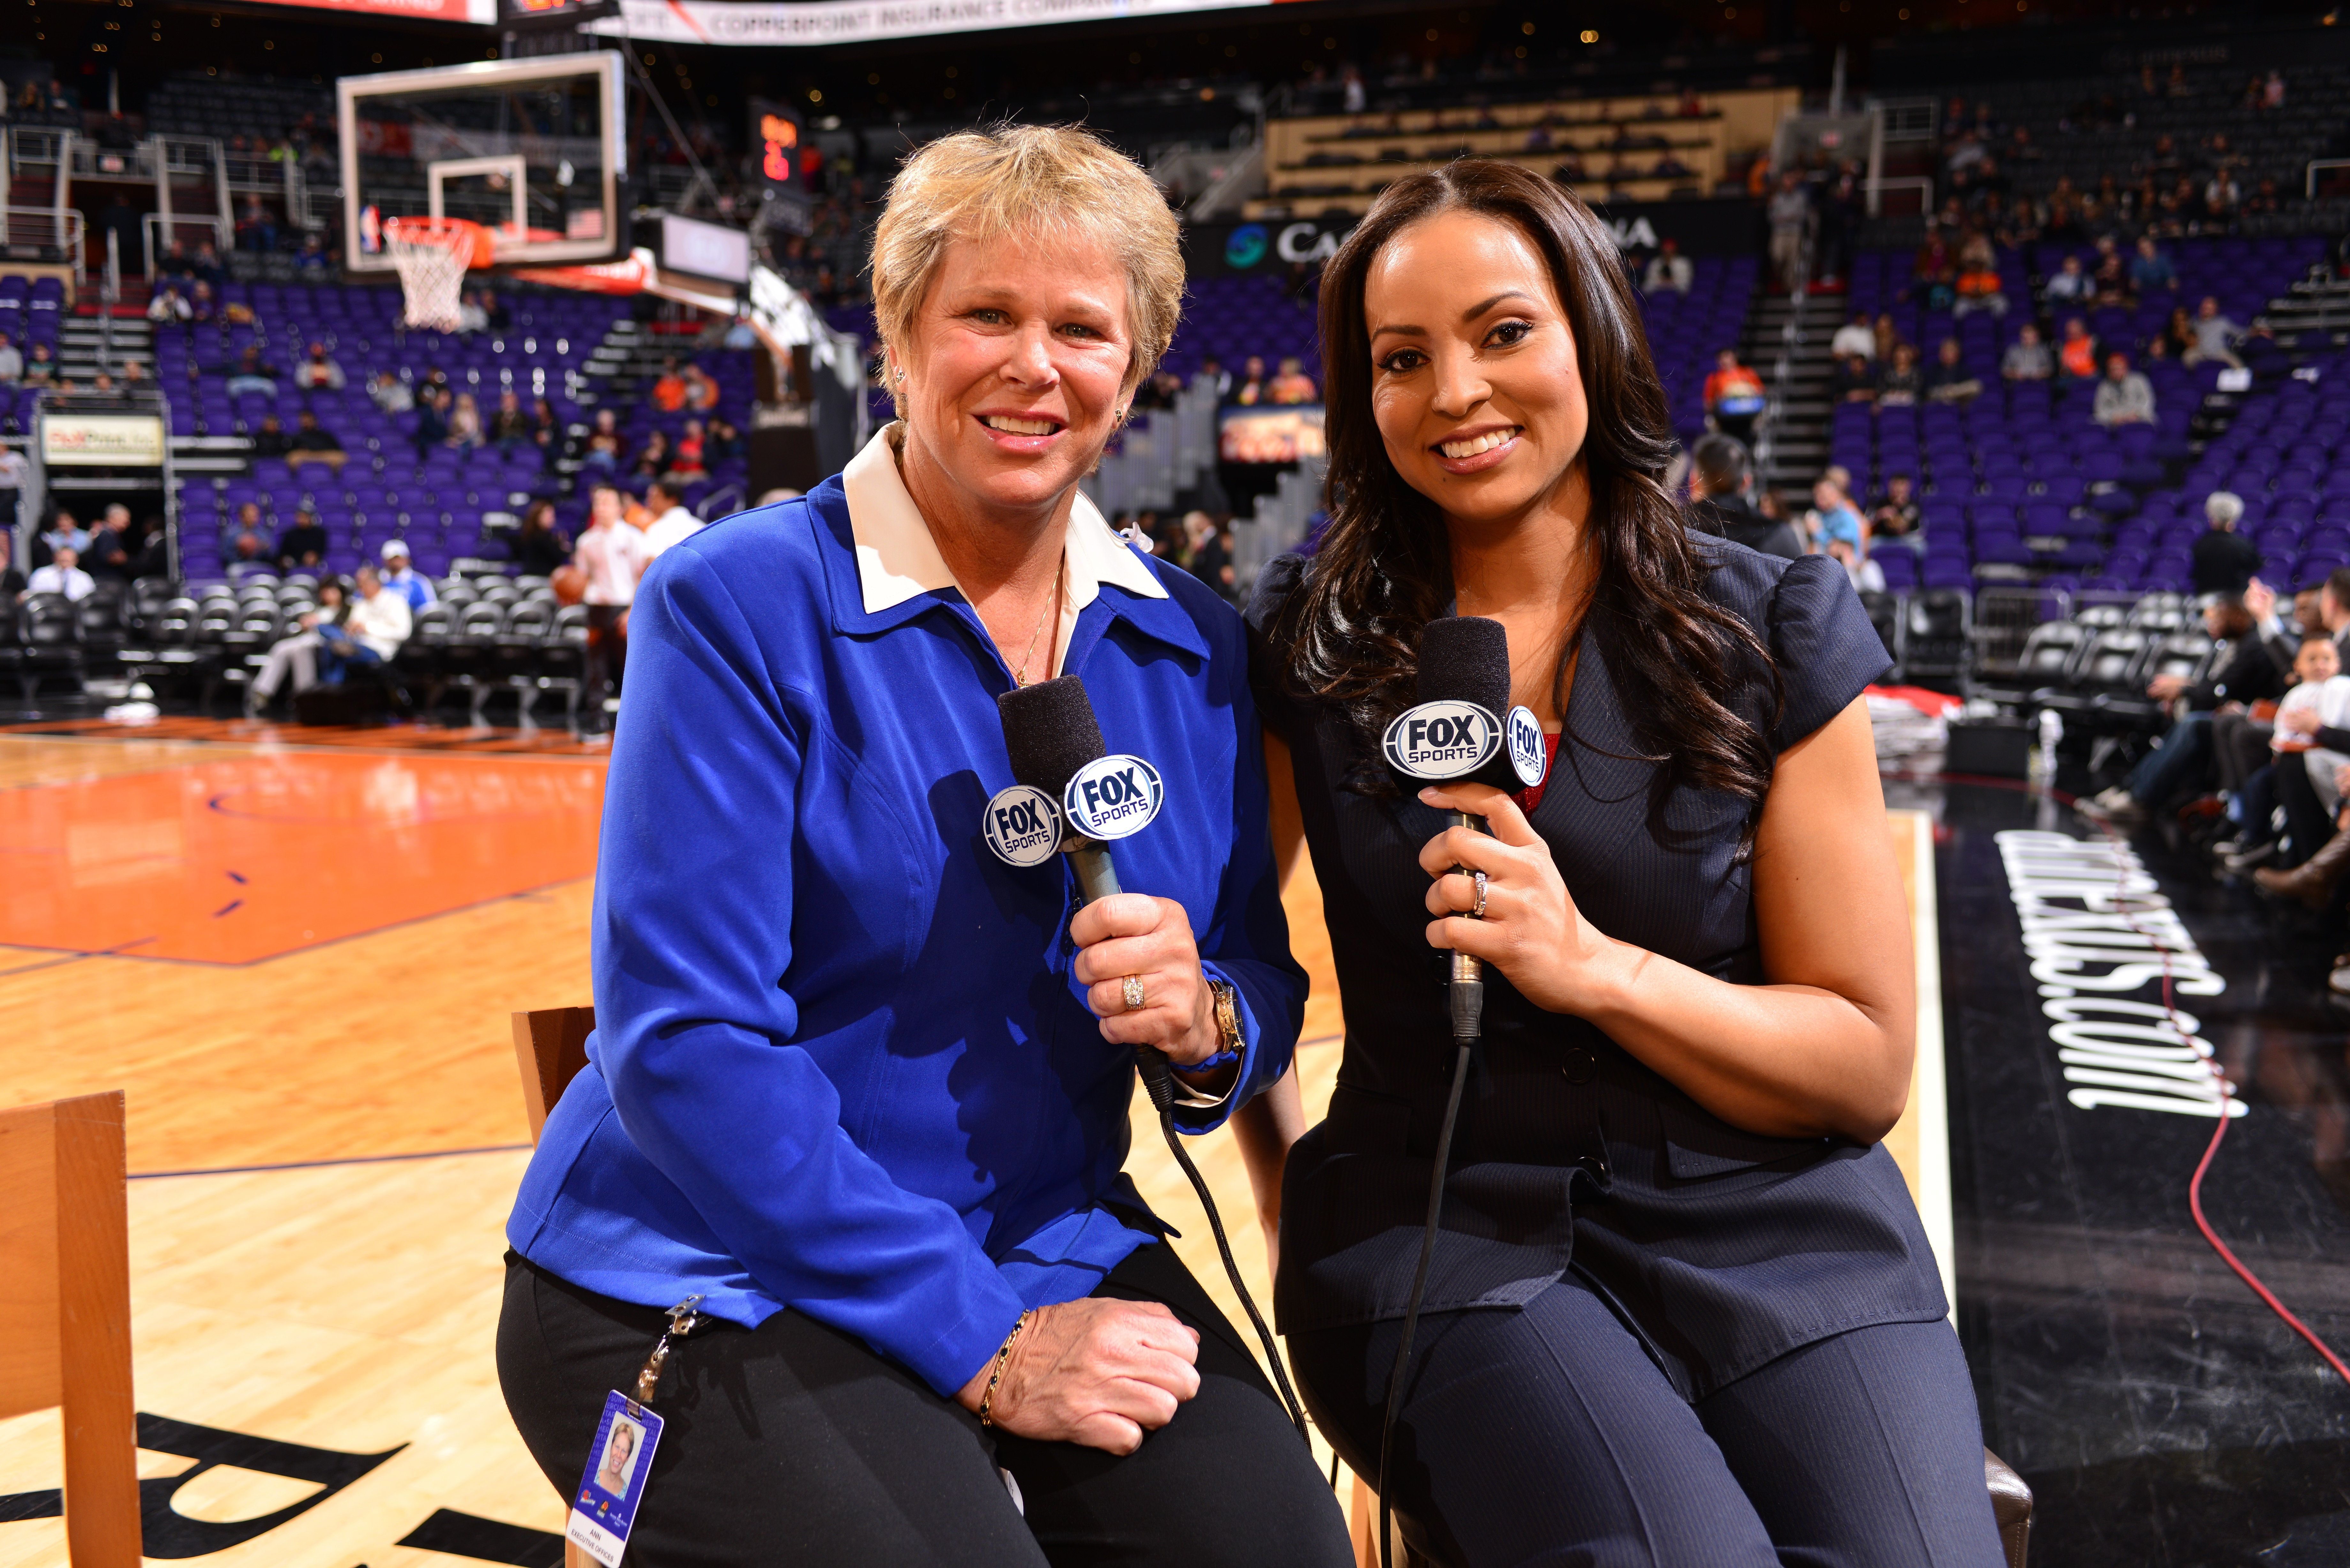 NBA analysts Ann Meyers (left) and Stephanie Ready (right) were pumped to meet-up before their historical broadcasts.